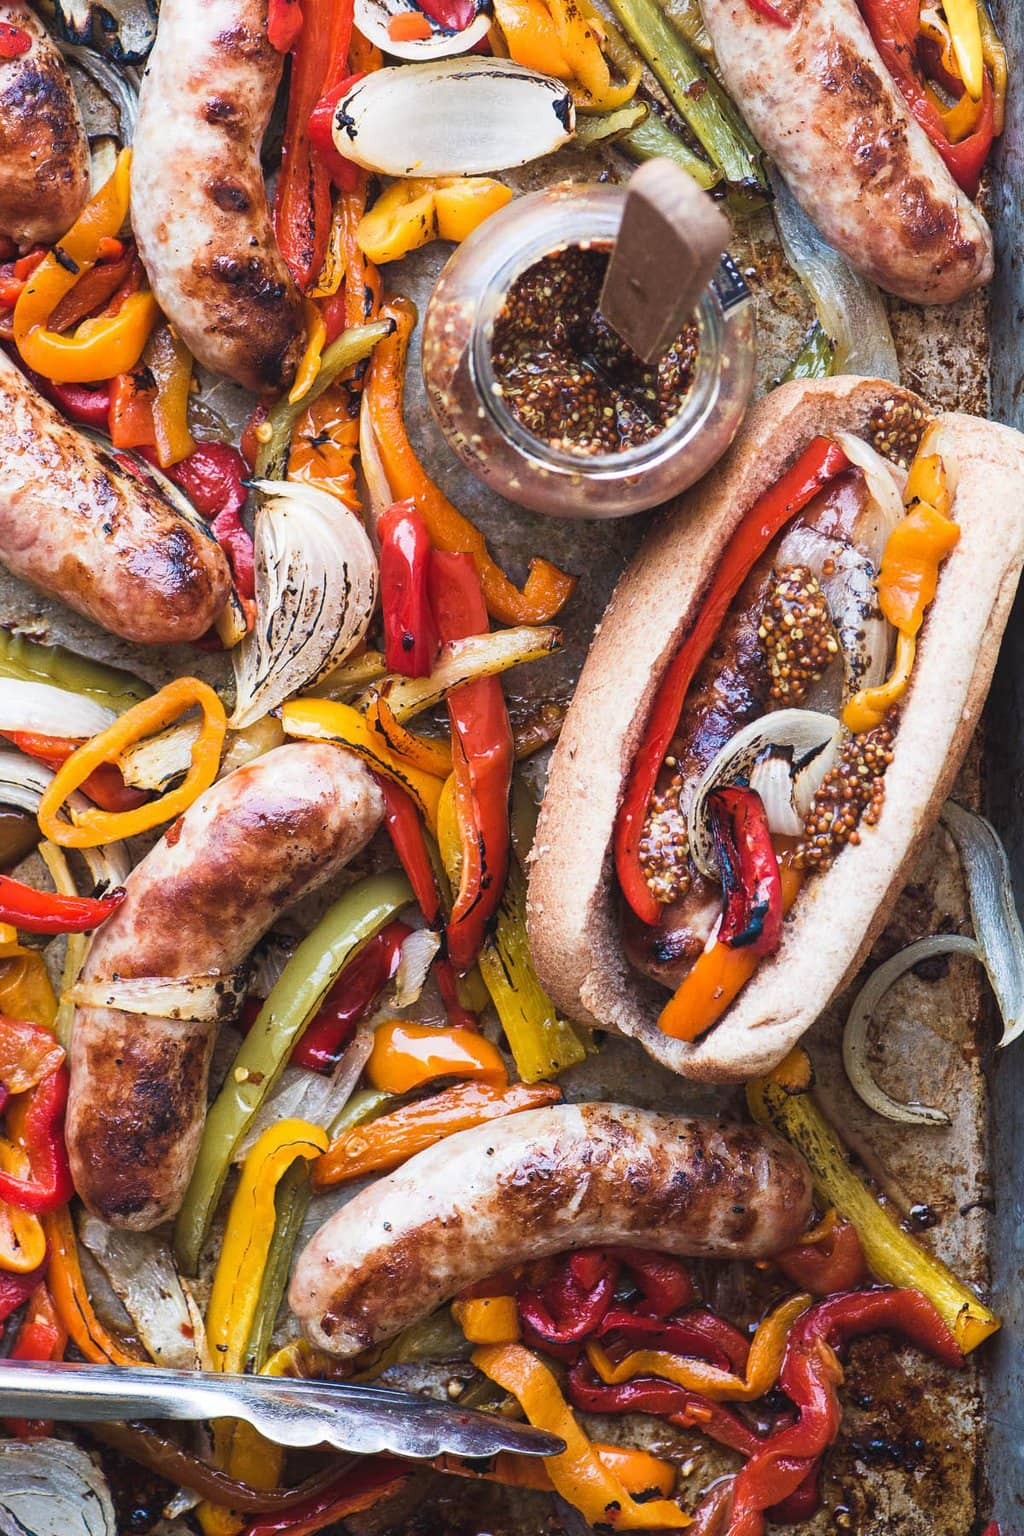 Overhead photo of Sheet Pan Peppers and Brats with a bottle of spices and silver tongs on the pan.